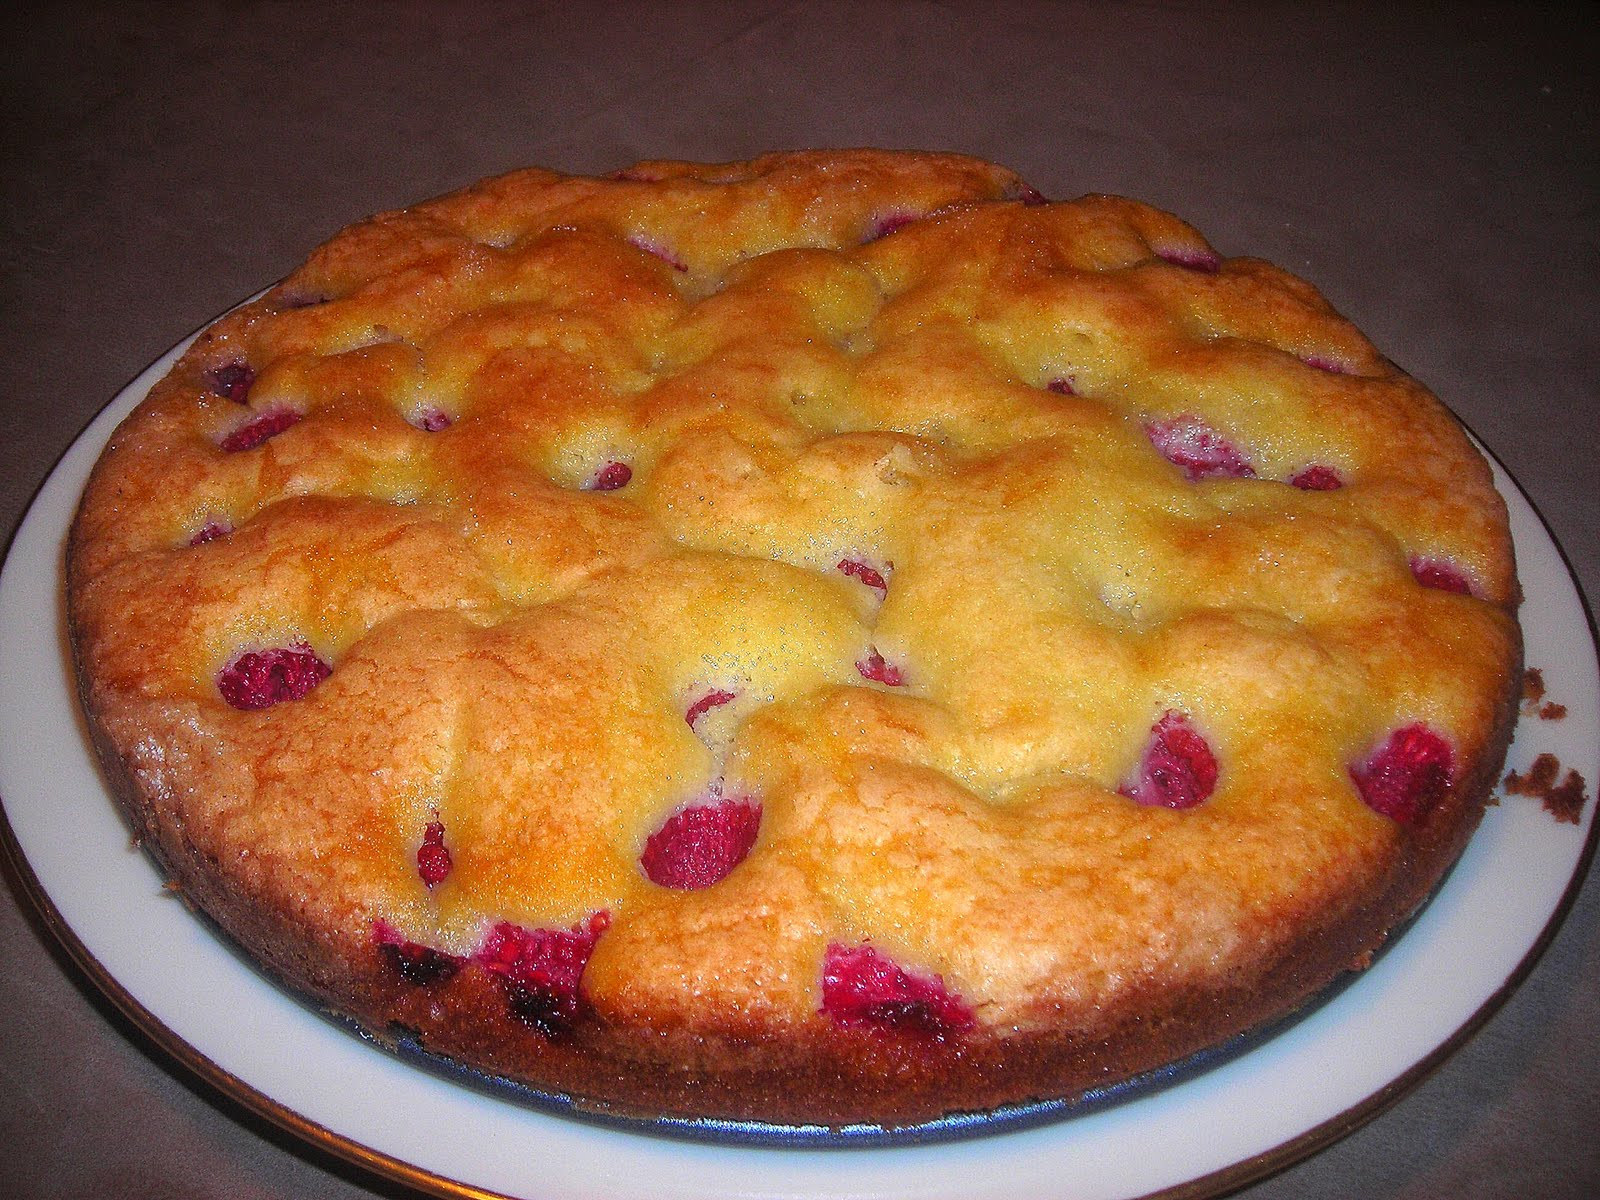 Download image Raspberry Buttermilk Cake PC, Android, iPhone and iPad ...